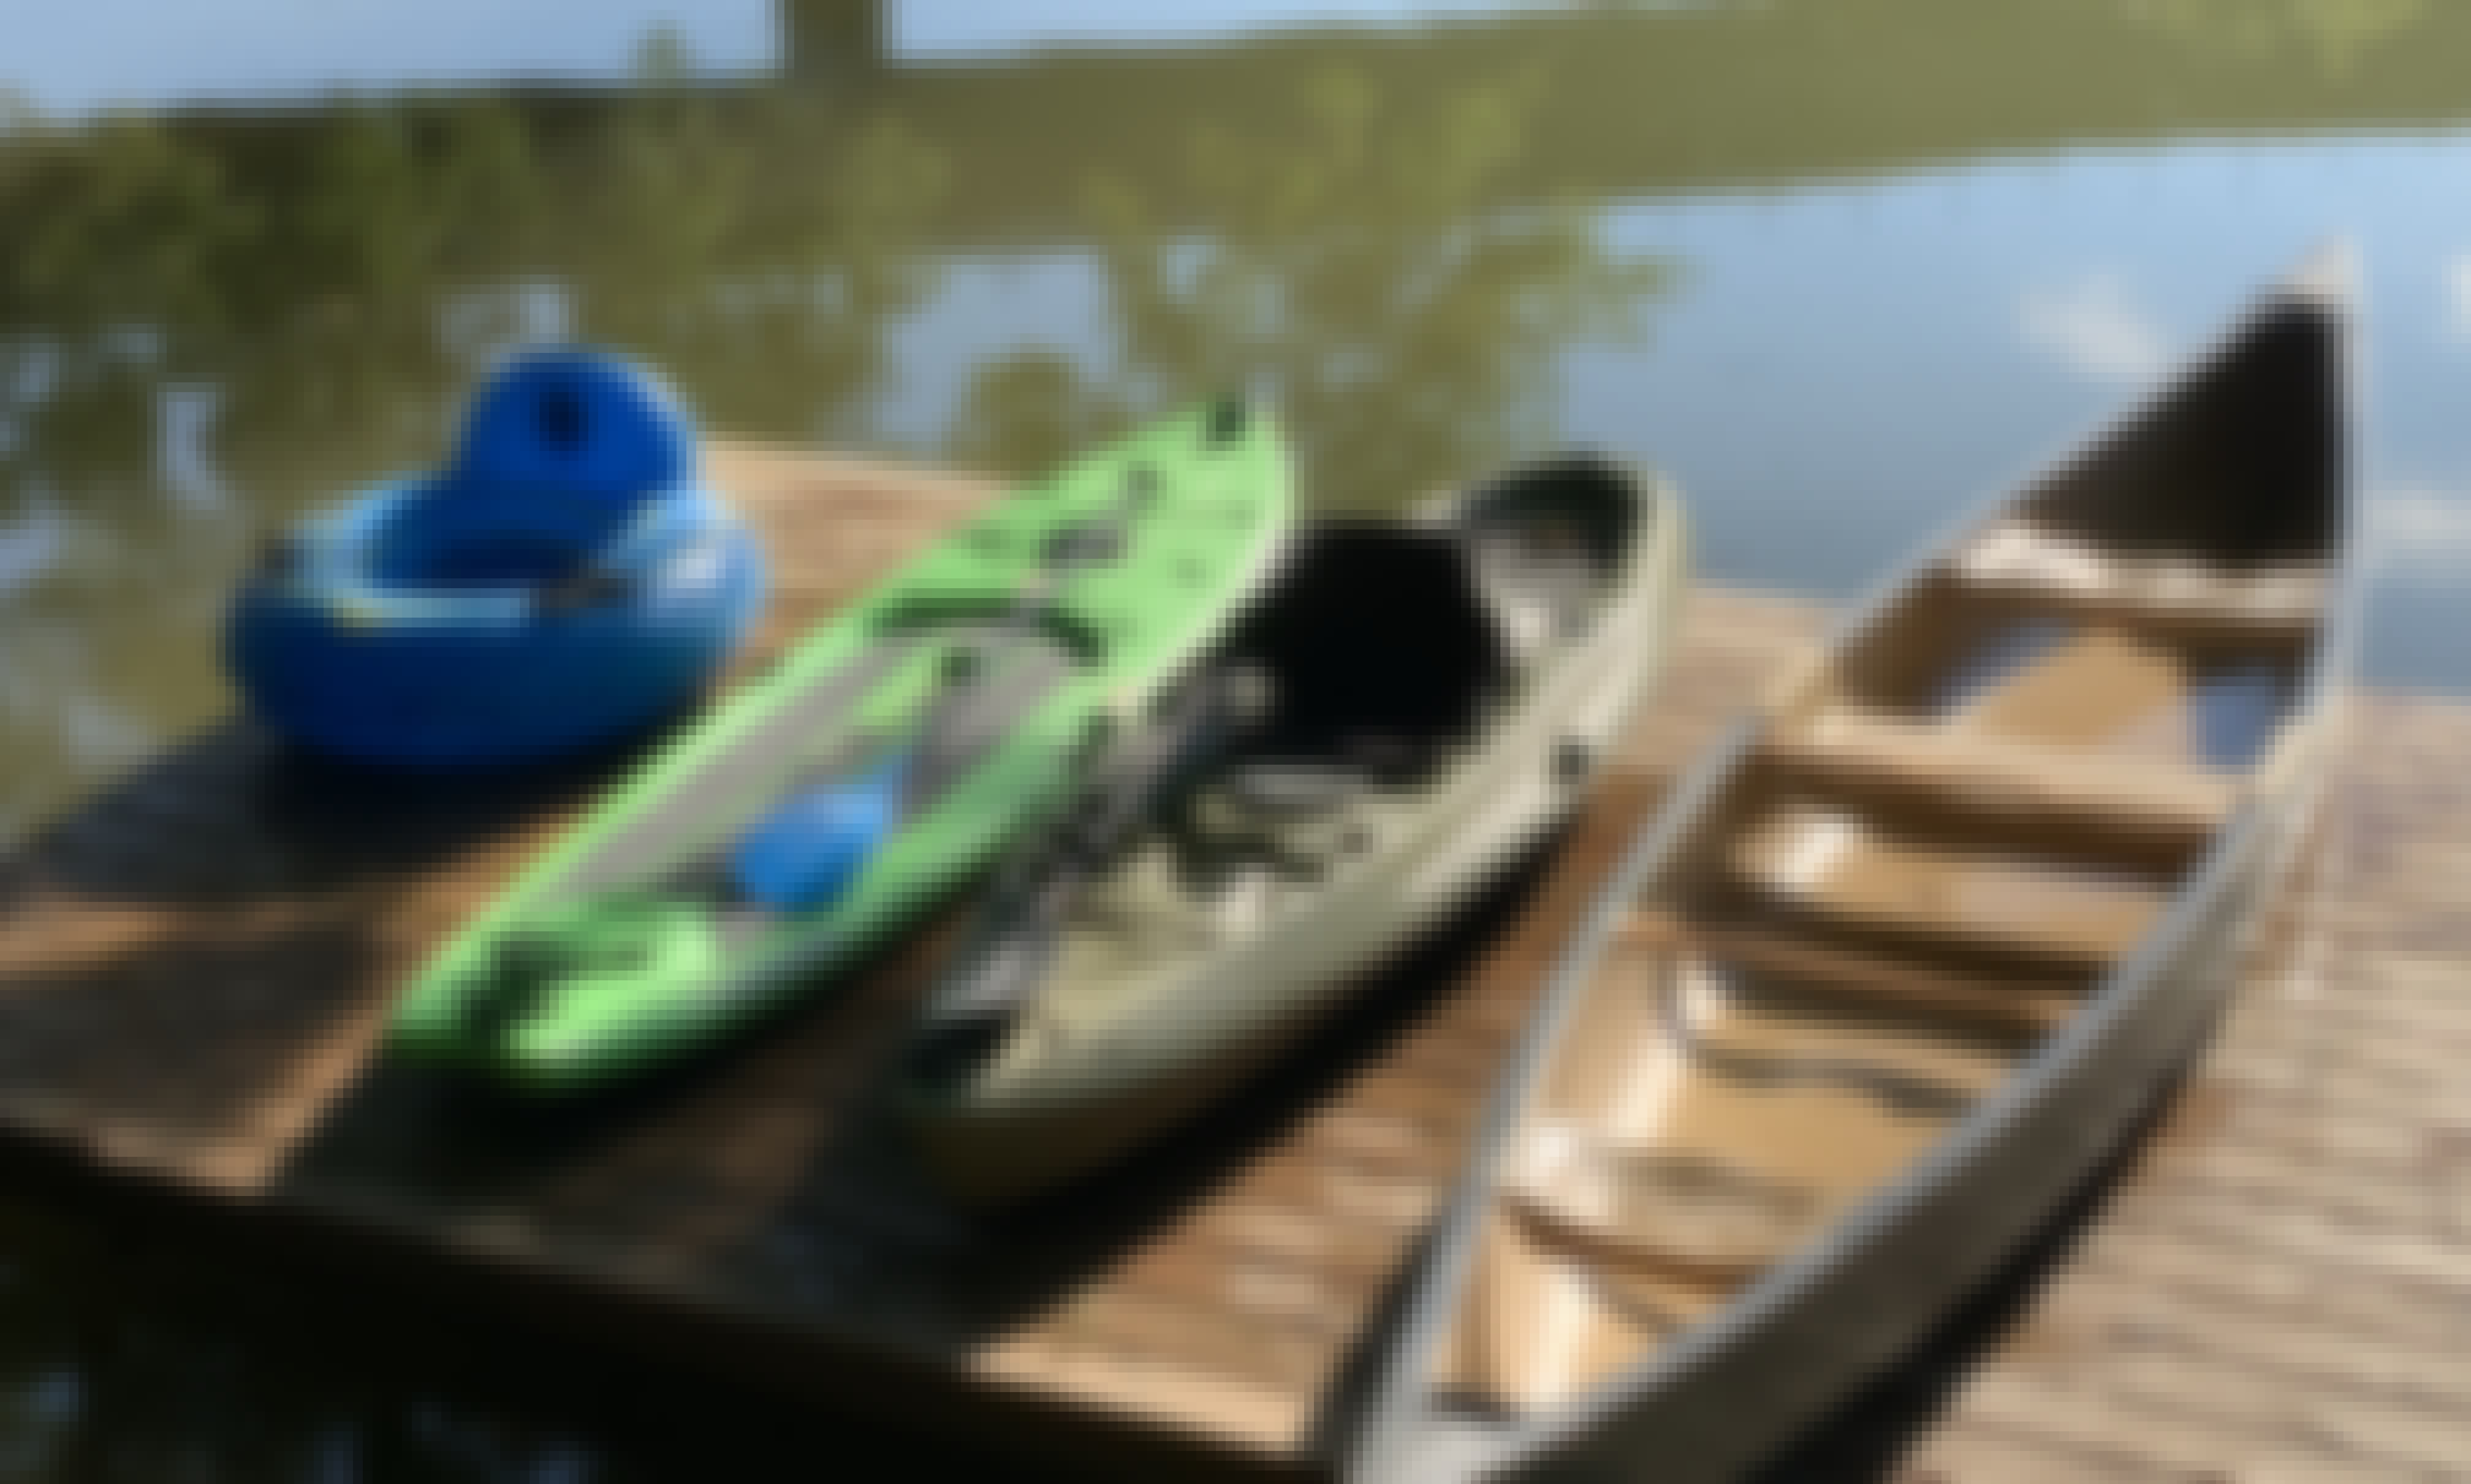 Rent a Stand Up Paddleboard in Dickerson, Maryland